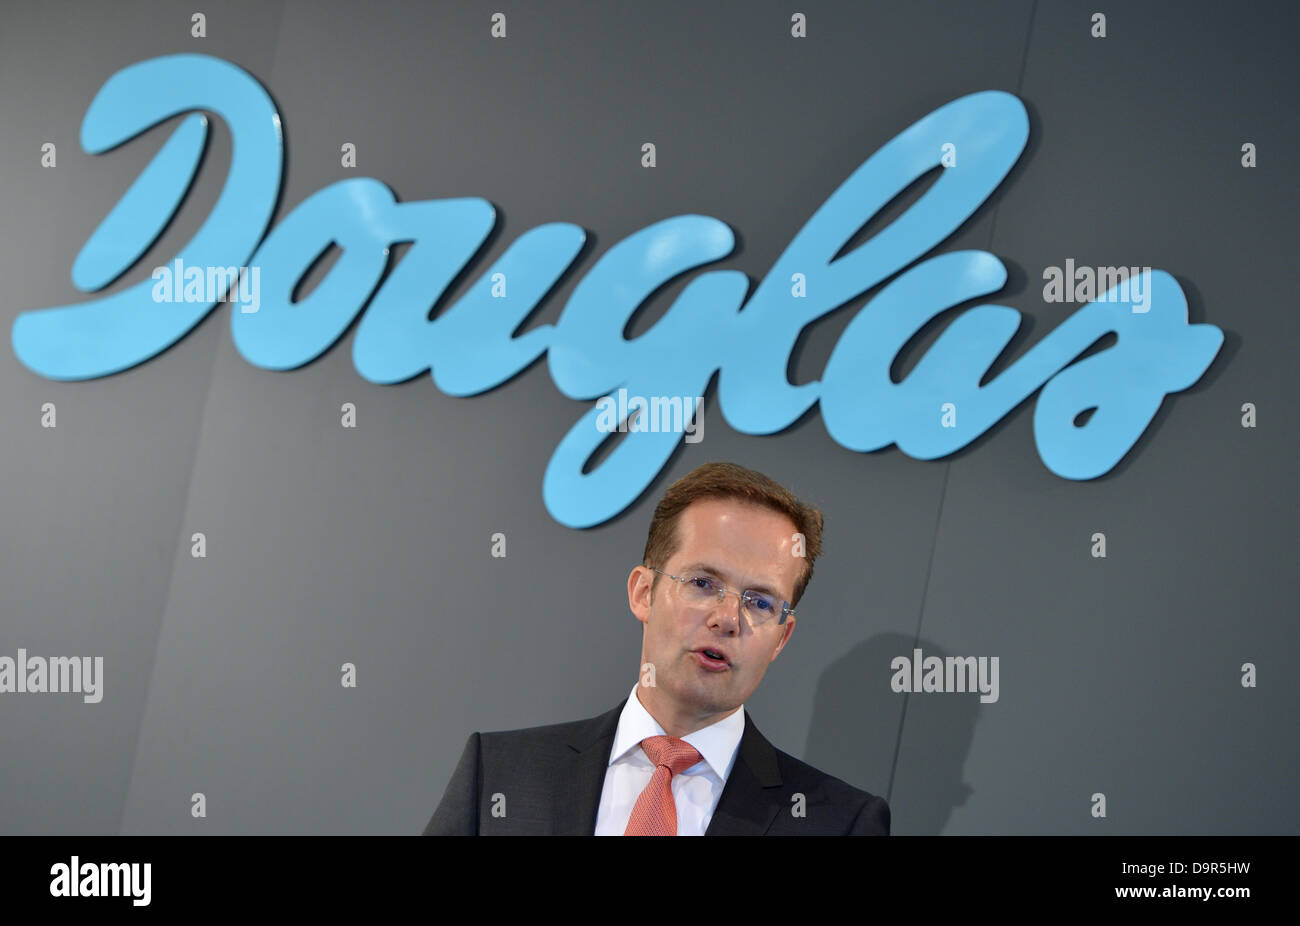 Member of the executive board of Douglas Holding AG, Manfred Kroneder, speaks at a press conference of the company - Stock Image